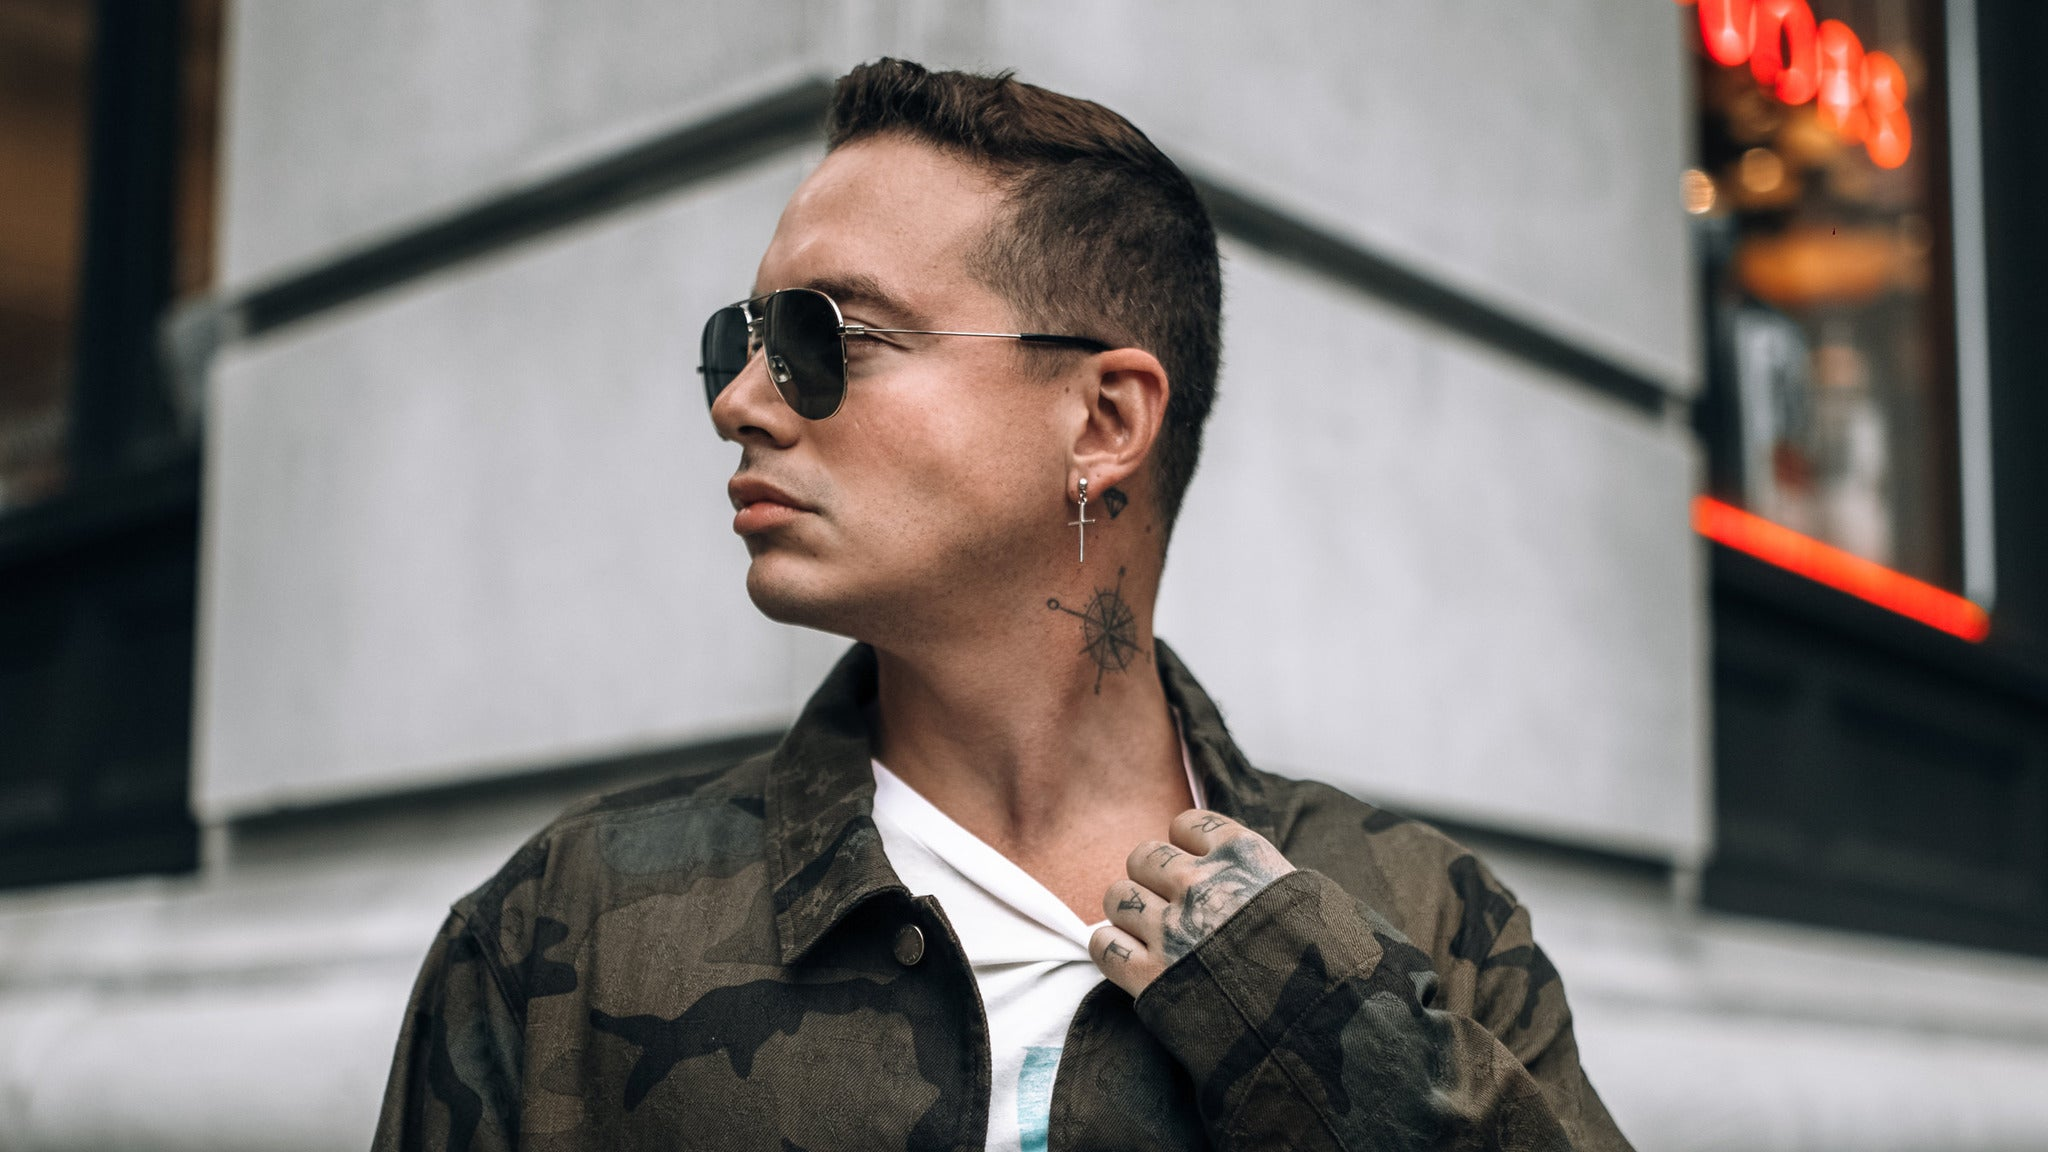 J Balvin Vibras Tour at Stephens Auditorium